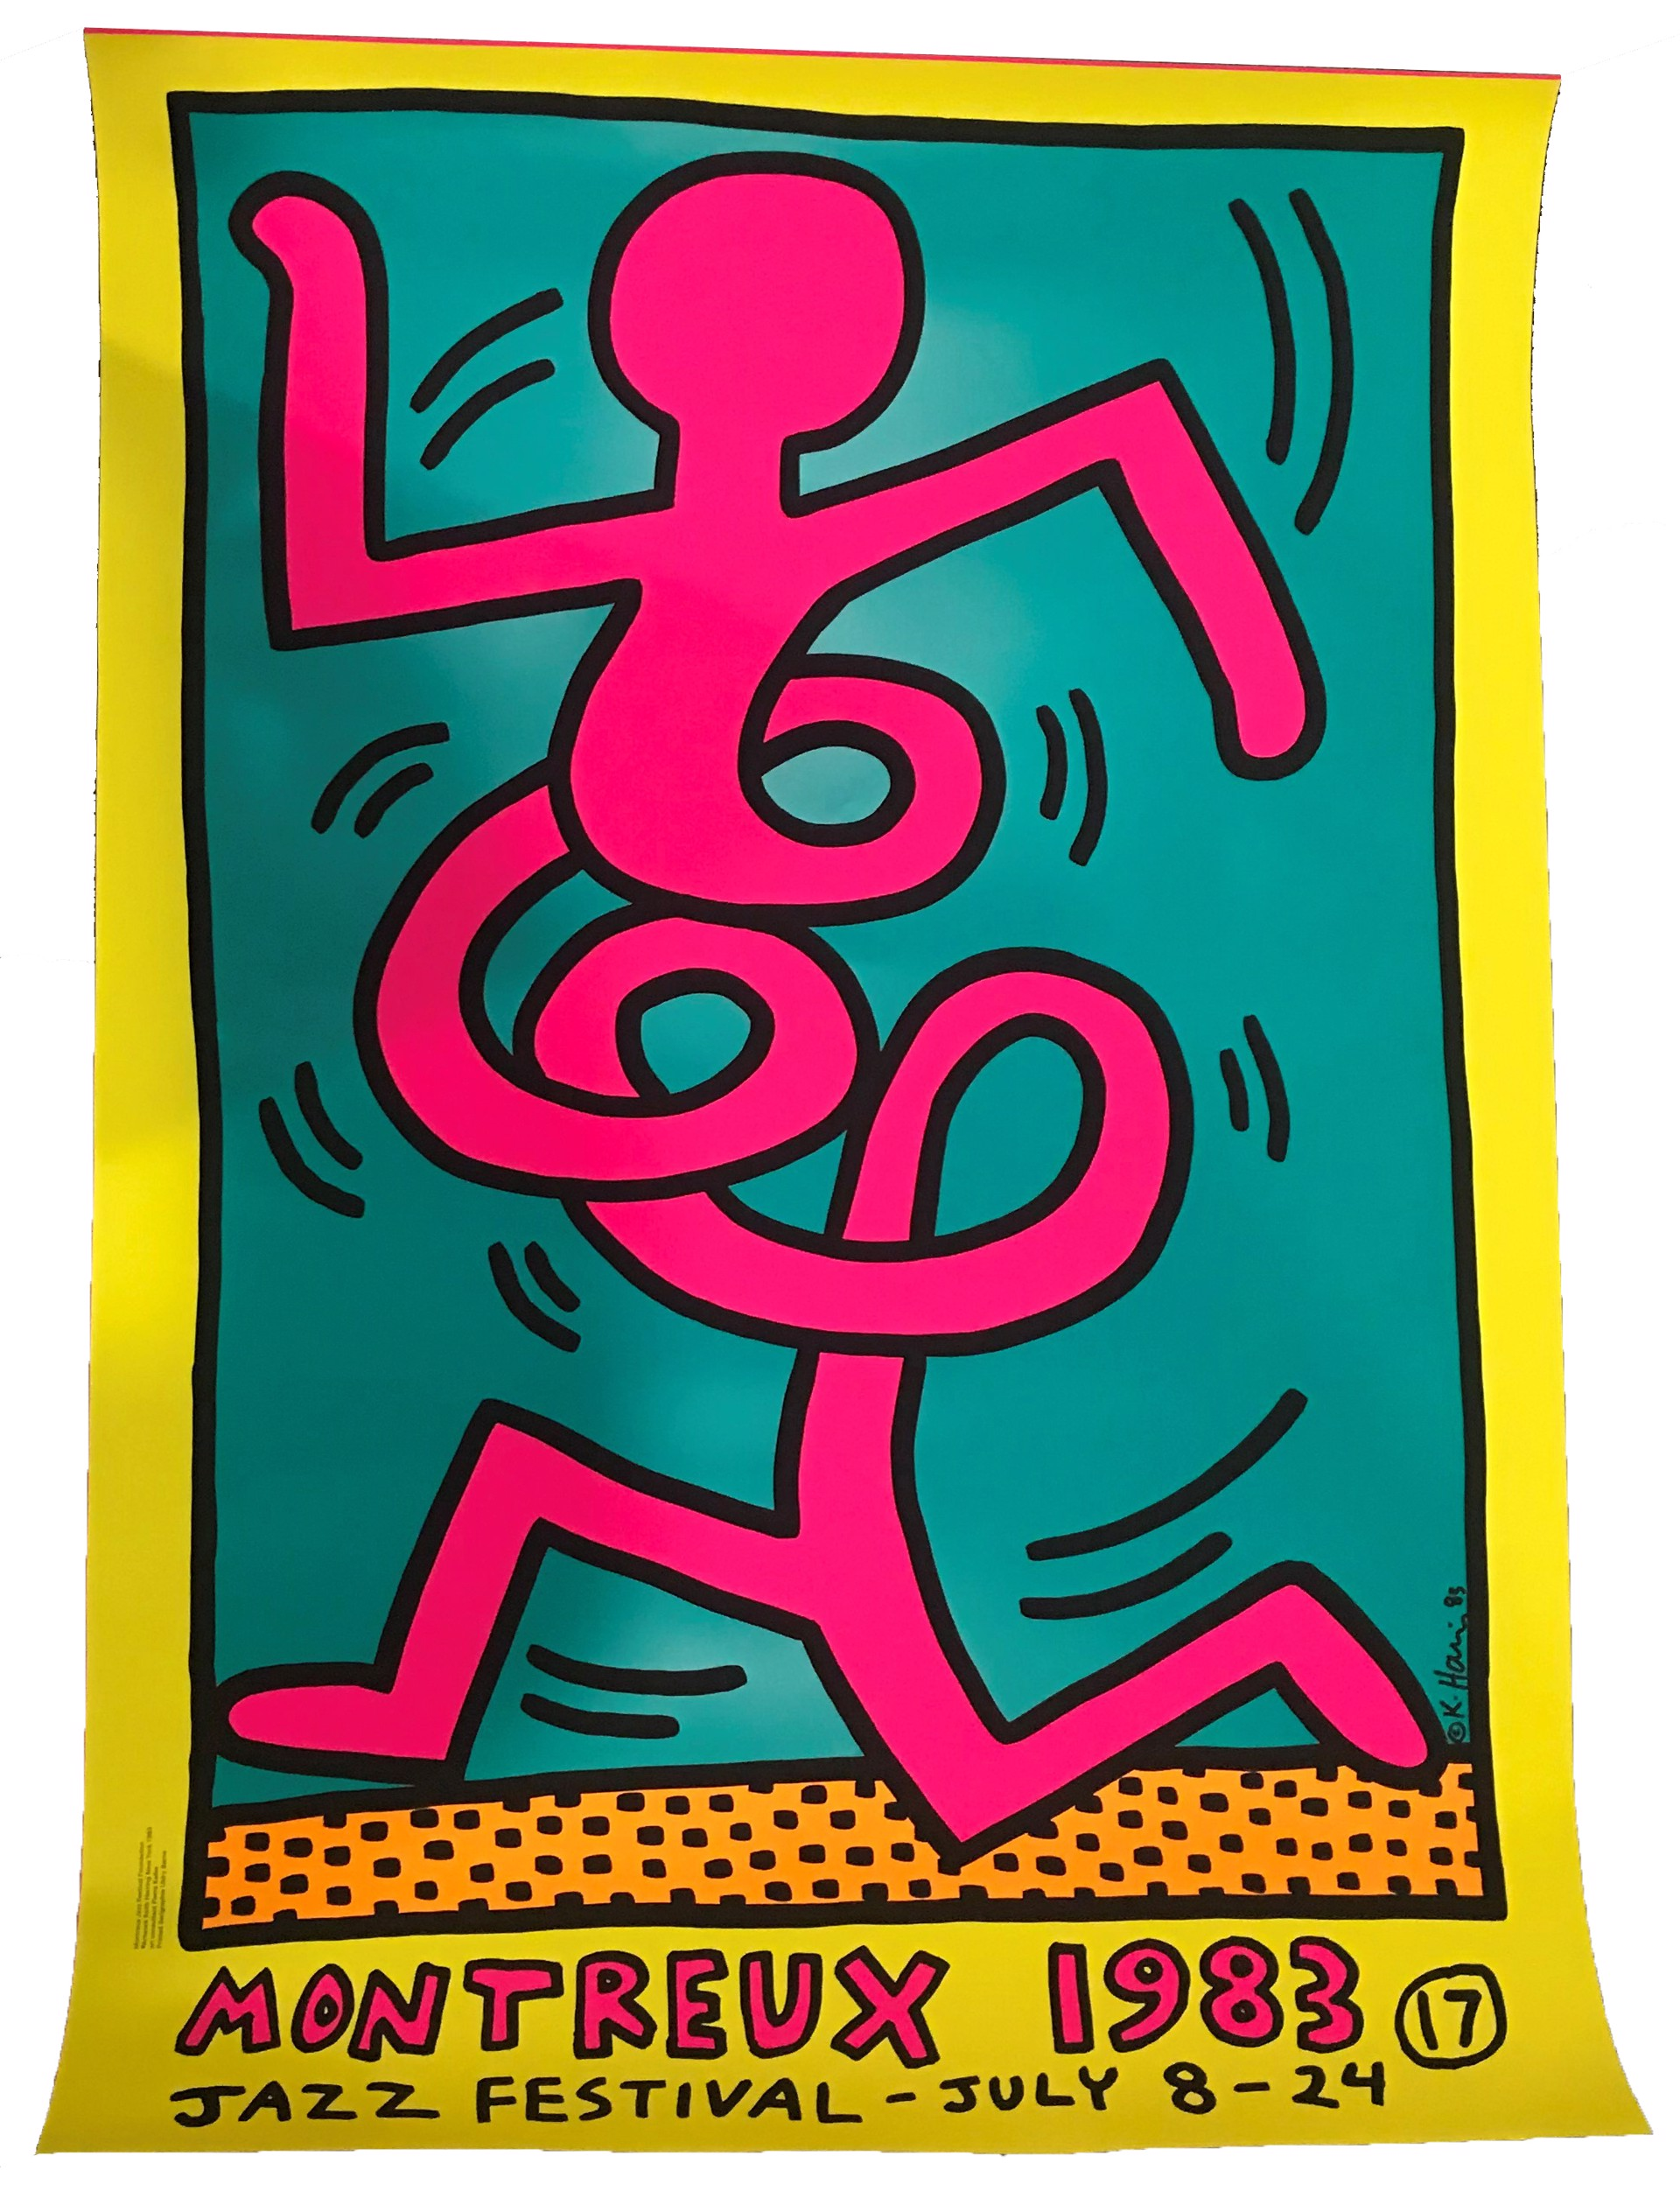 Montreux Festival De Jazz (Yellow Background) by Keith Haring (1958 - 1990)